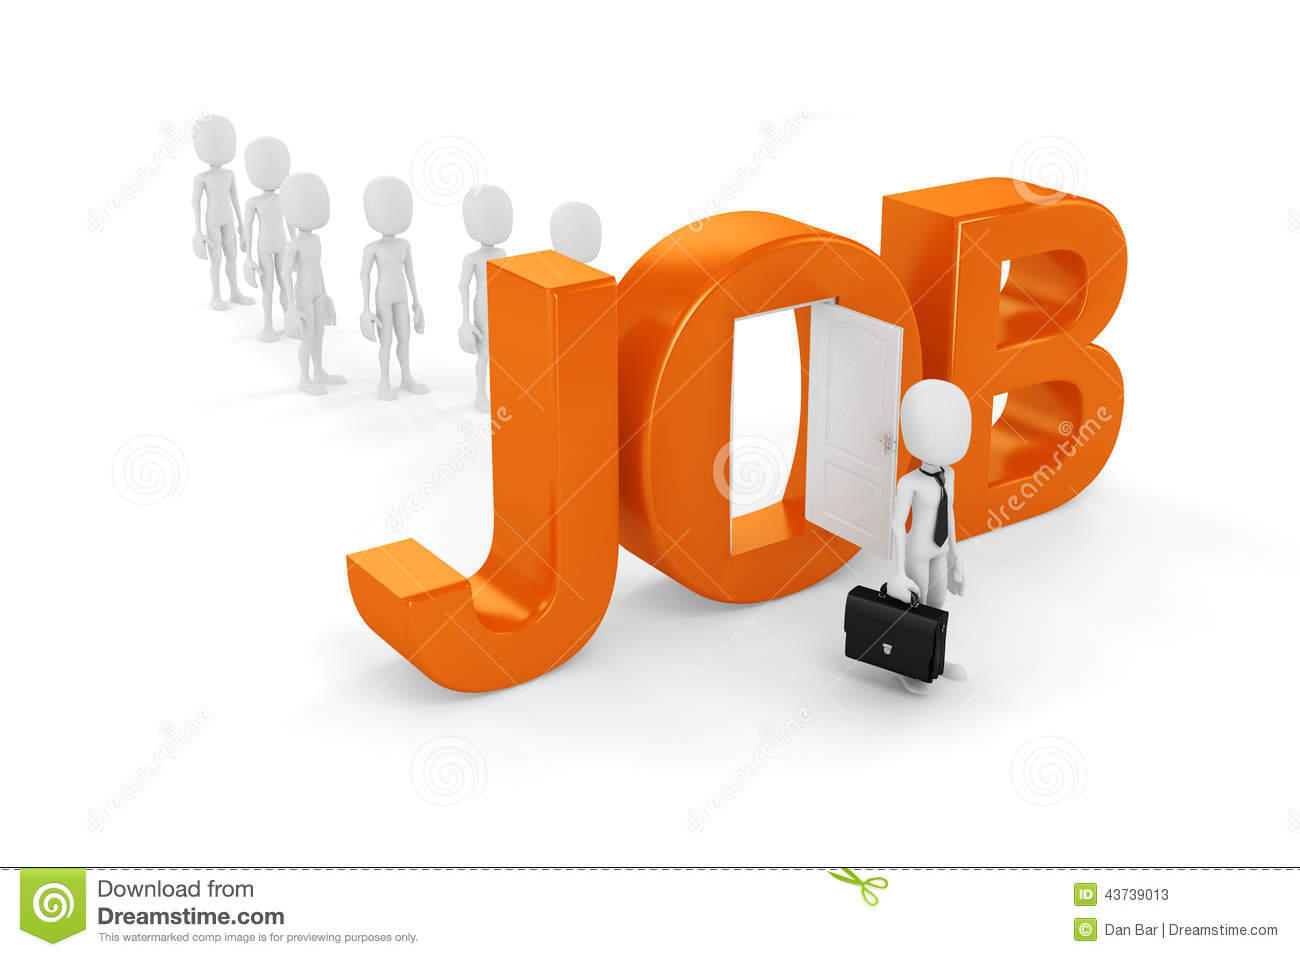 d man new job opportunity stock illustration image  3d man new job opportunity stock photos